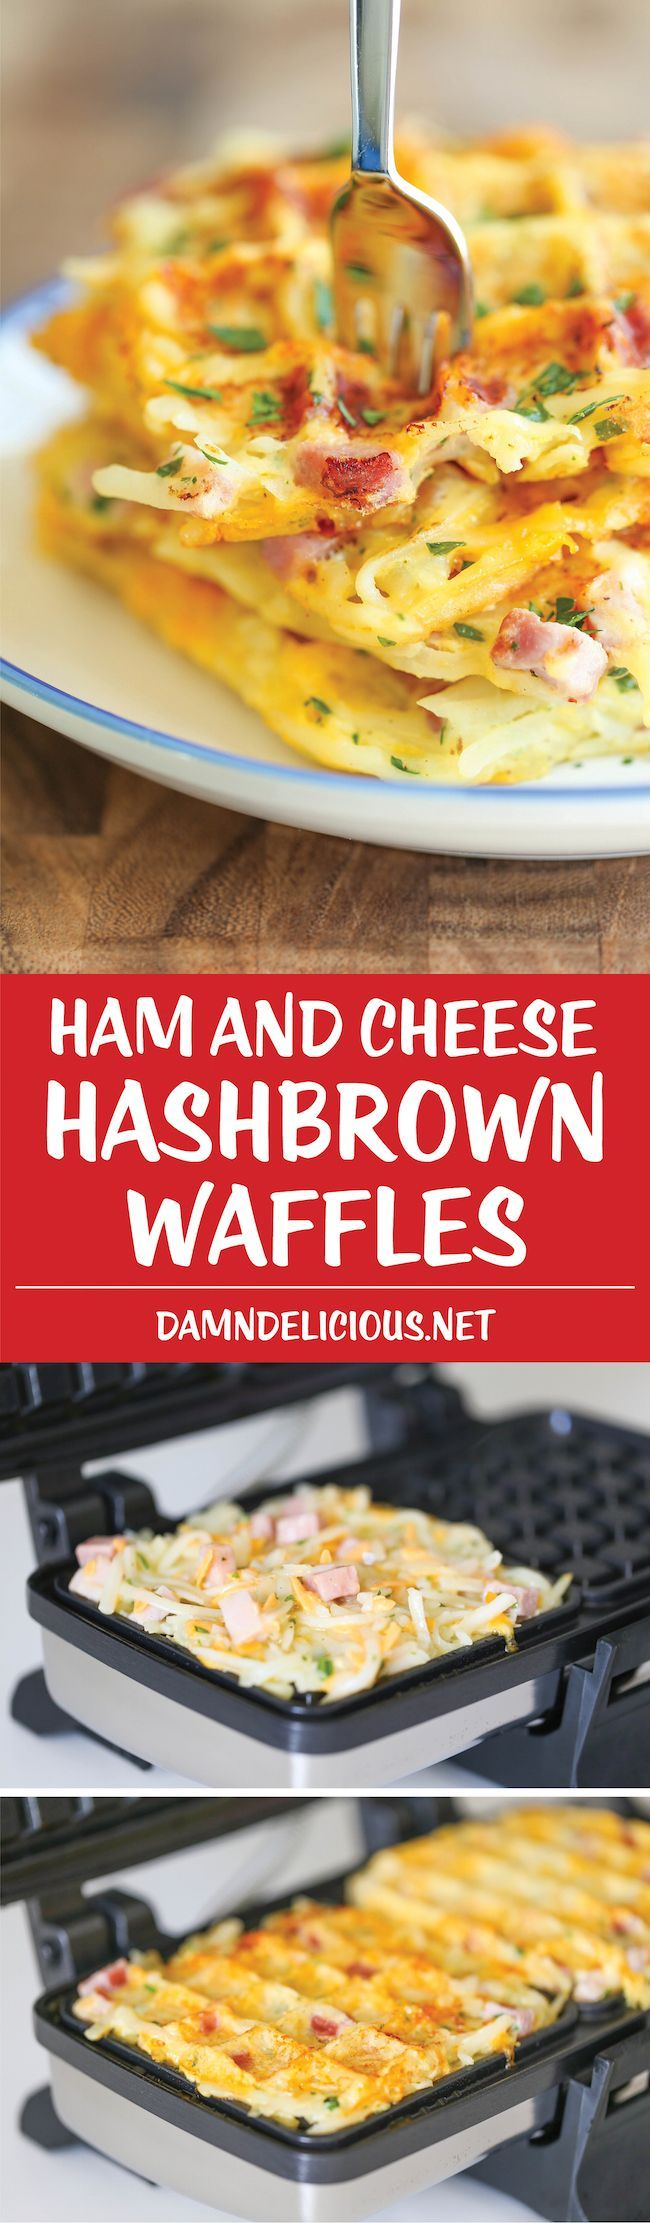 Ham and Cheese Hashbrown Waffles - Crunchy, yet silky smooth hashbrowns made right in…